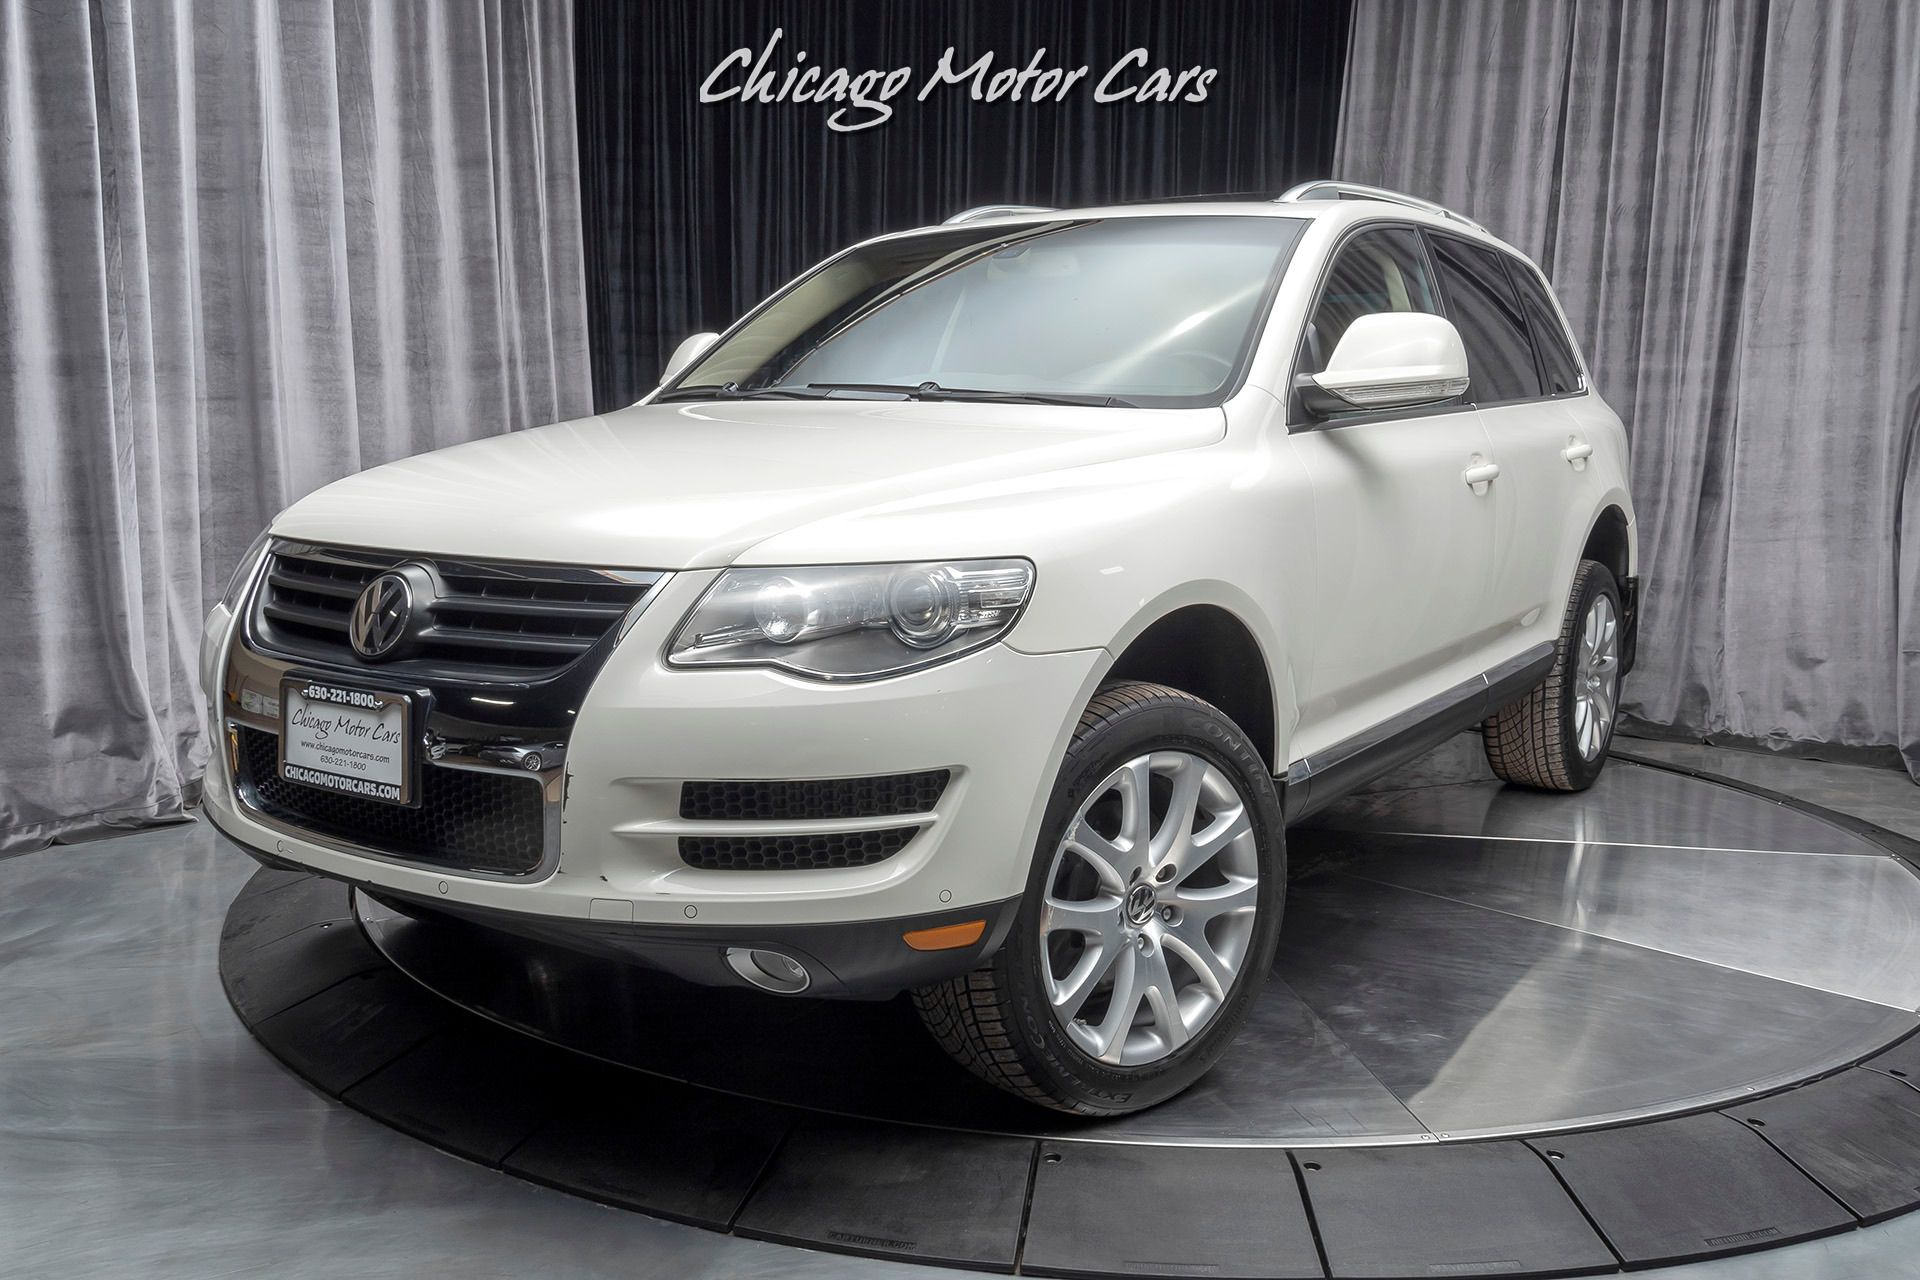 Used 2009 Volkswagen Touareg 2 V6 Tdi For Sale Special Pricing Chicago Motor Cars Stock 16934